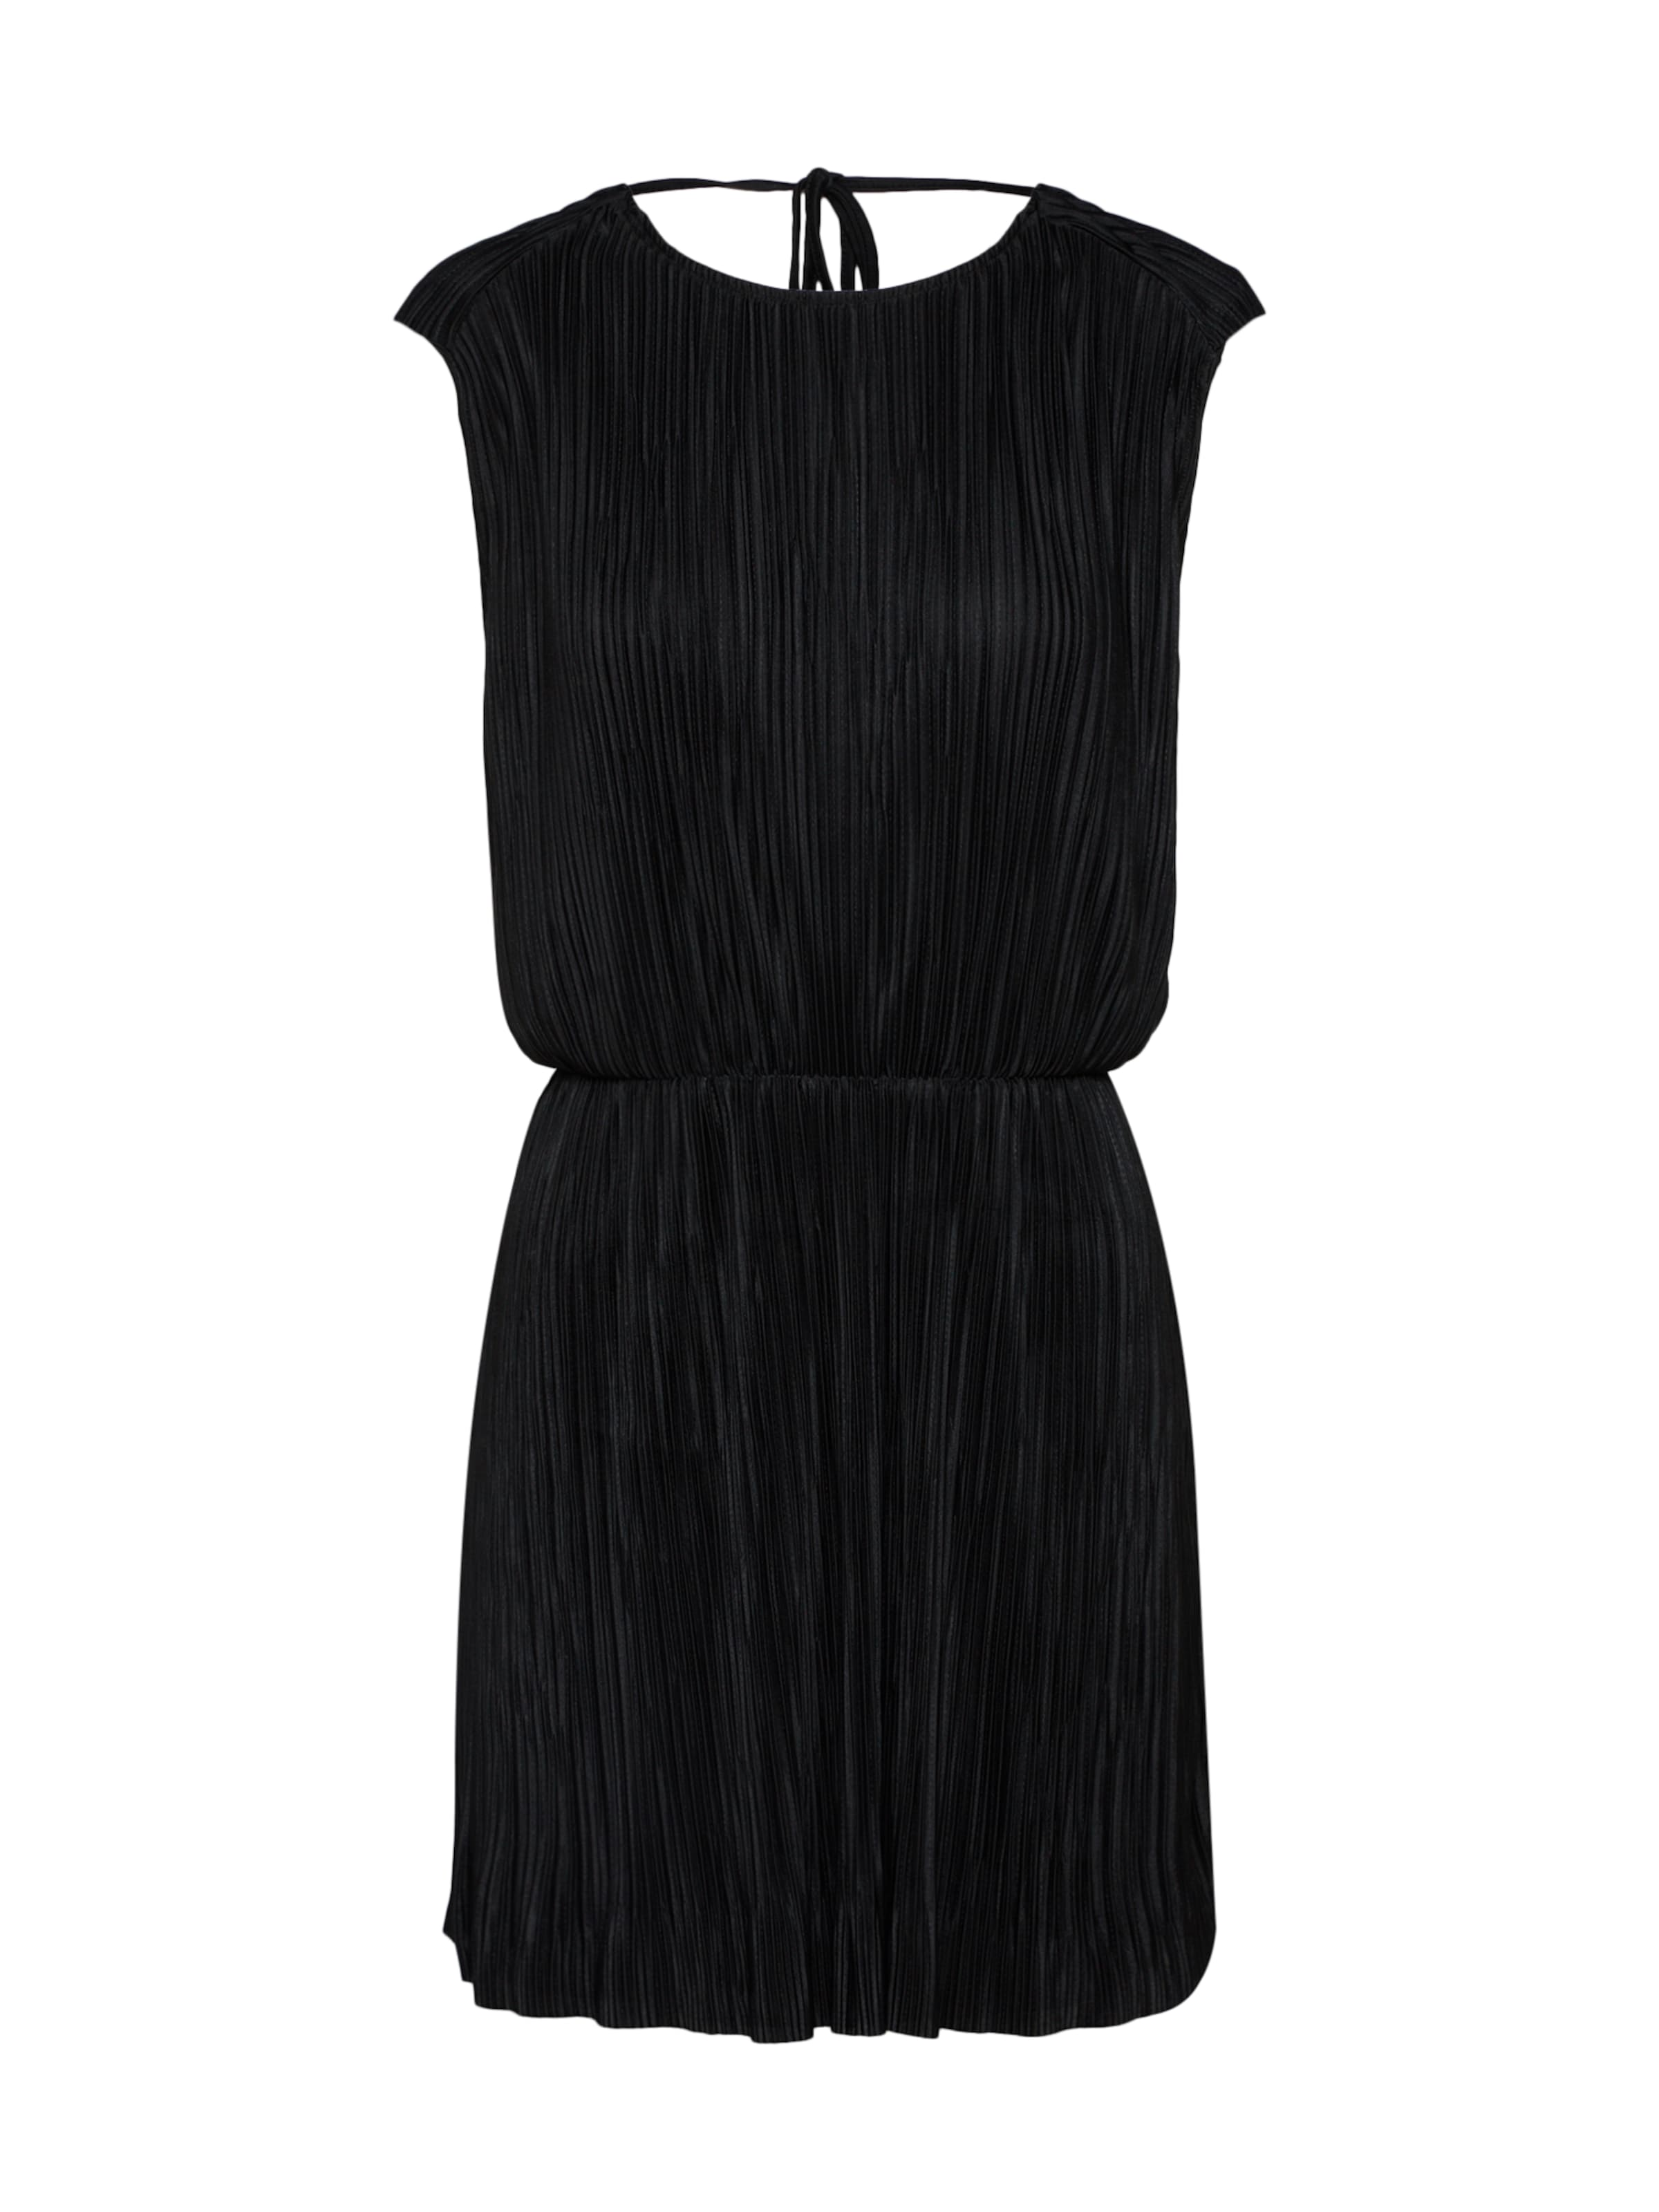 Noir Cocktail Ivyrevel De Robe En Y6yf7gvb